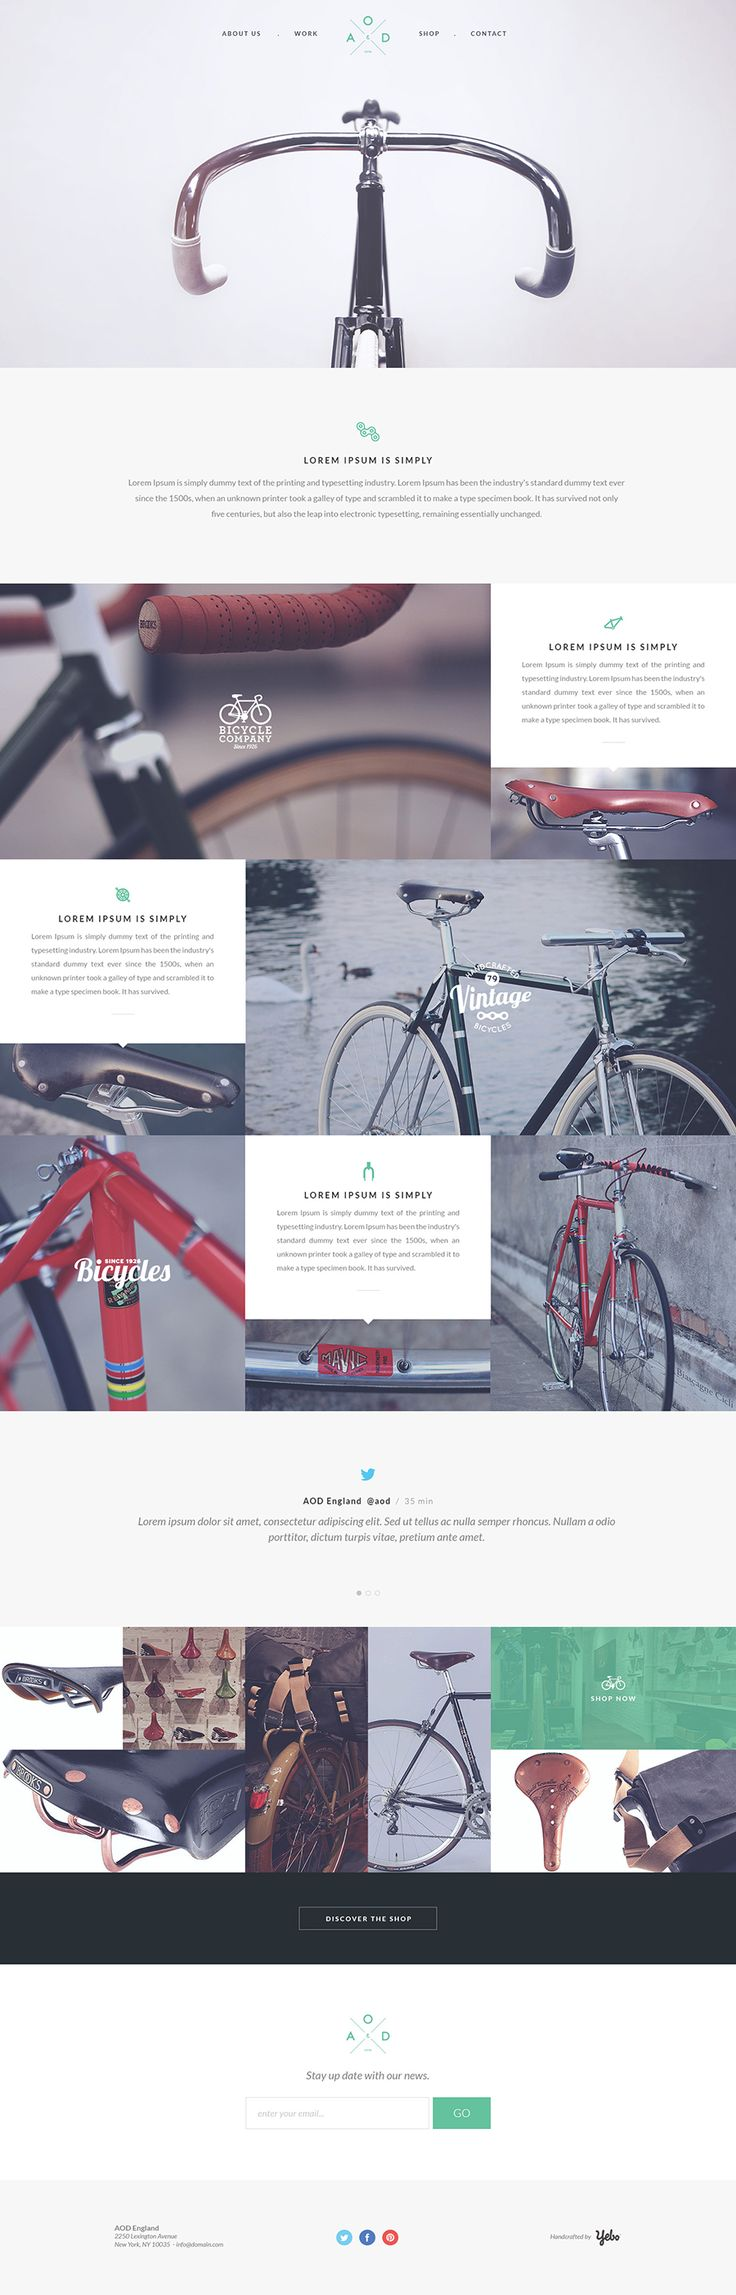 Bicycle. Free Onepage Photoshop Template by Yebo!